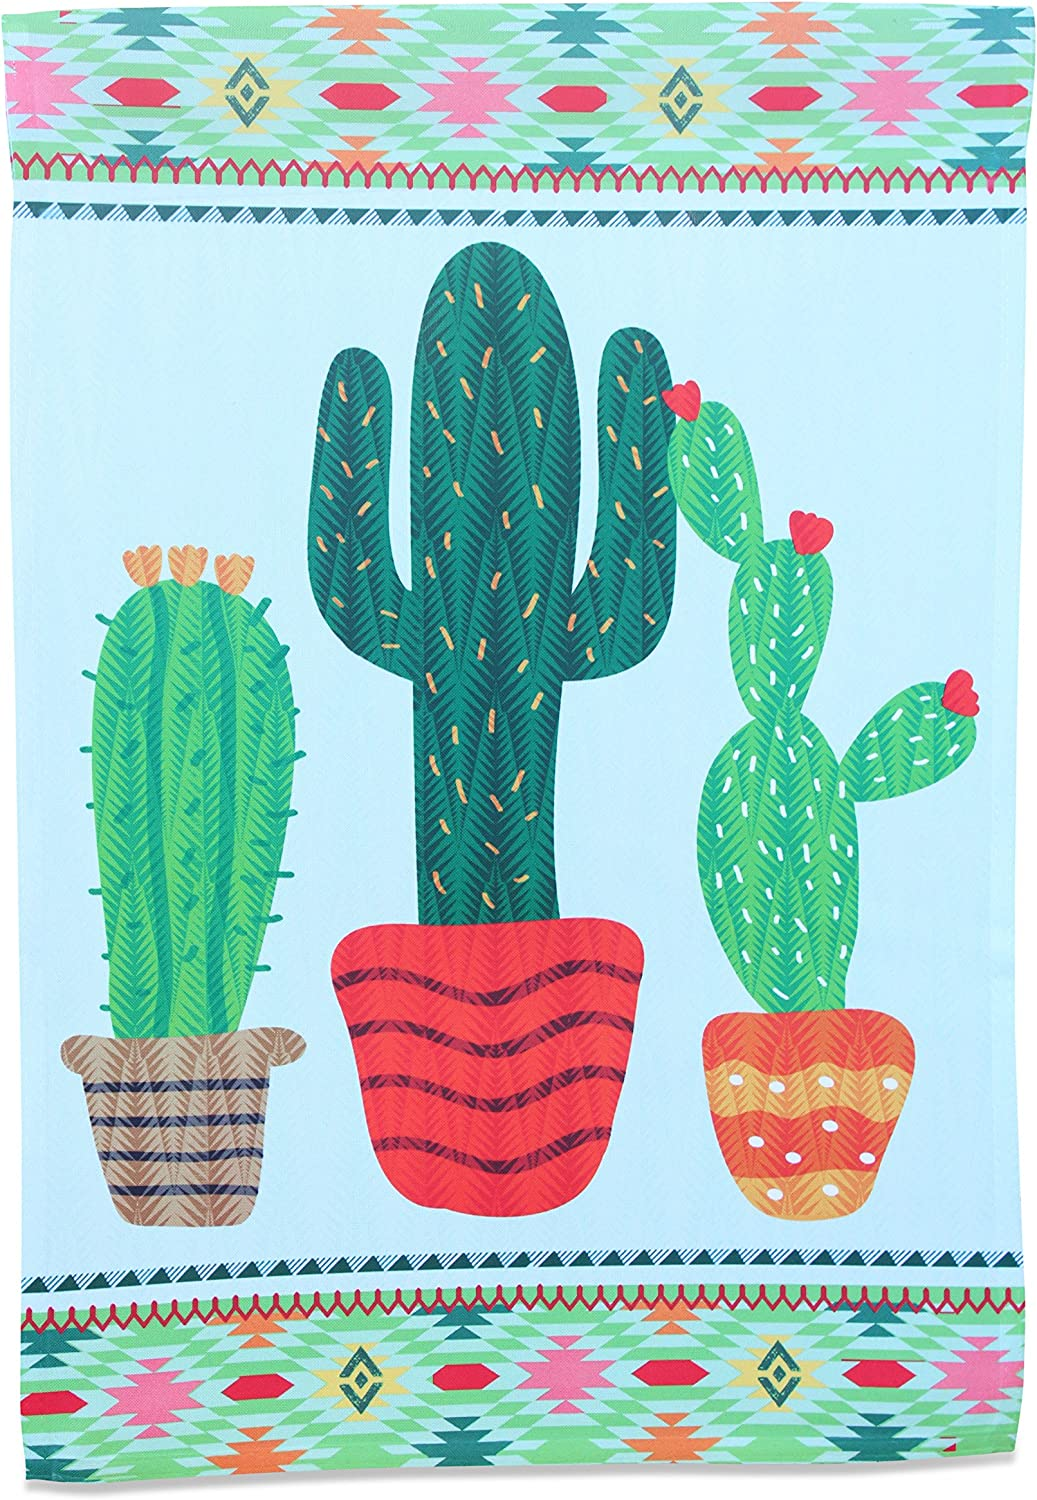 Cactus Garden Flag; Southwest Home Decor Small Mini Vertical Banner; Polyester Outdoor Succulent Picture Yard Lawn Decorative; Spring Summer Seasonal Artwork; Theme Party Decoration; 12.5 x 18 inches